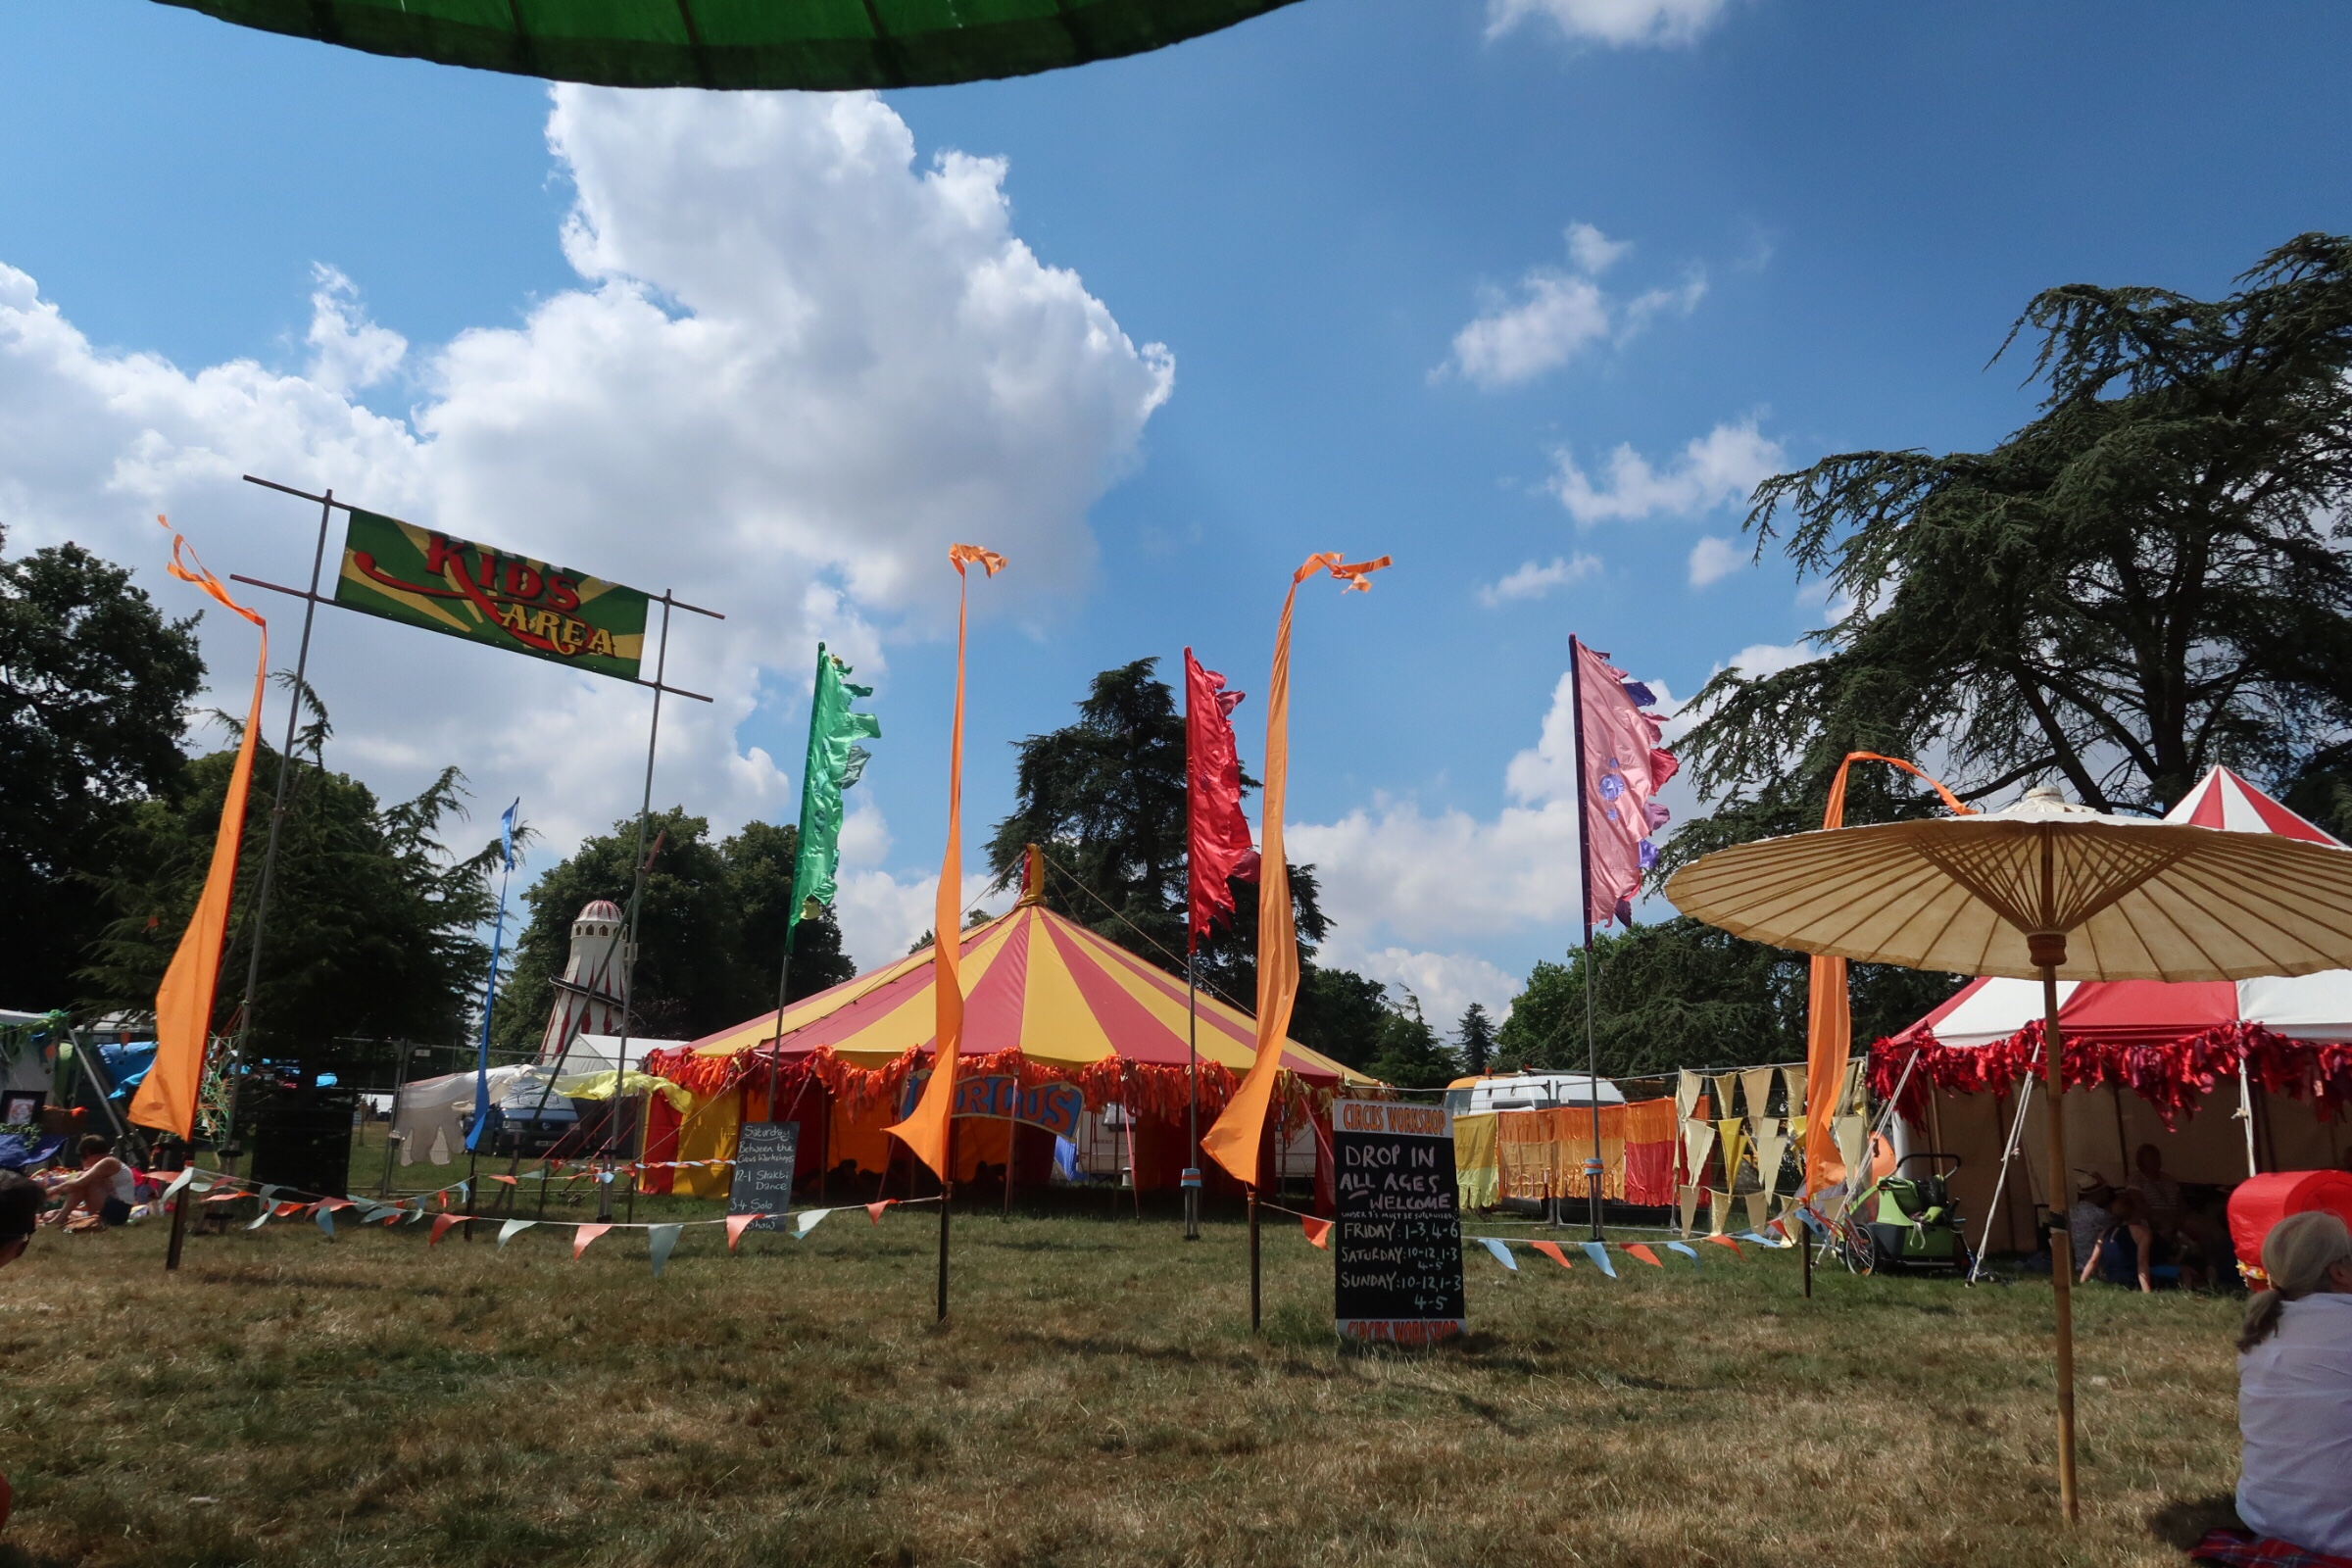 The kids area at Cornbury festival with the brightly coloured circus tents all around and bright blue sky above.